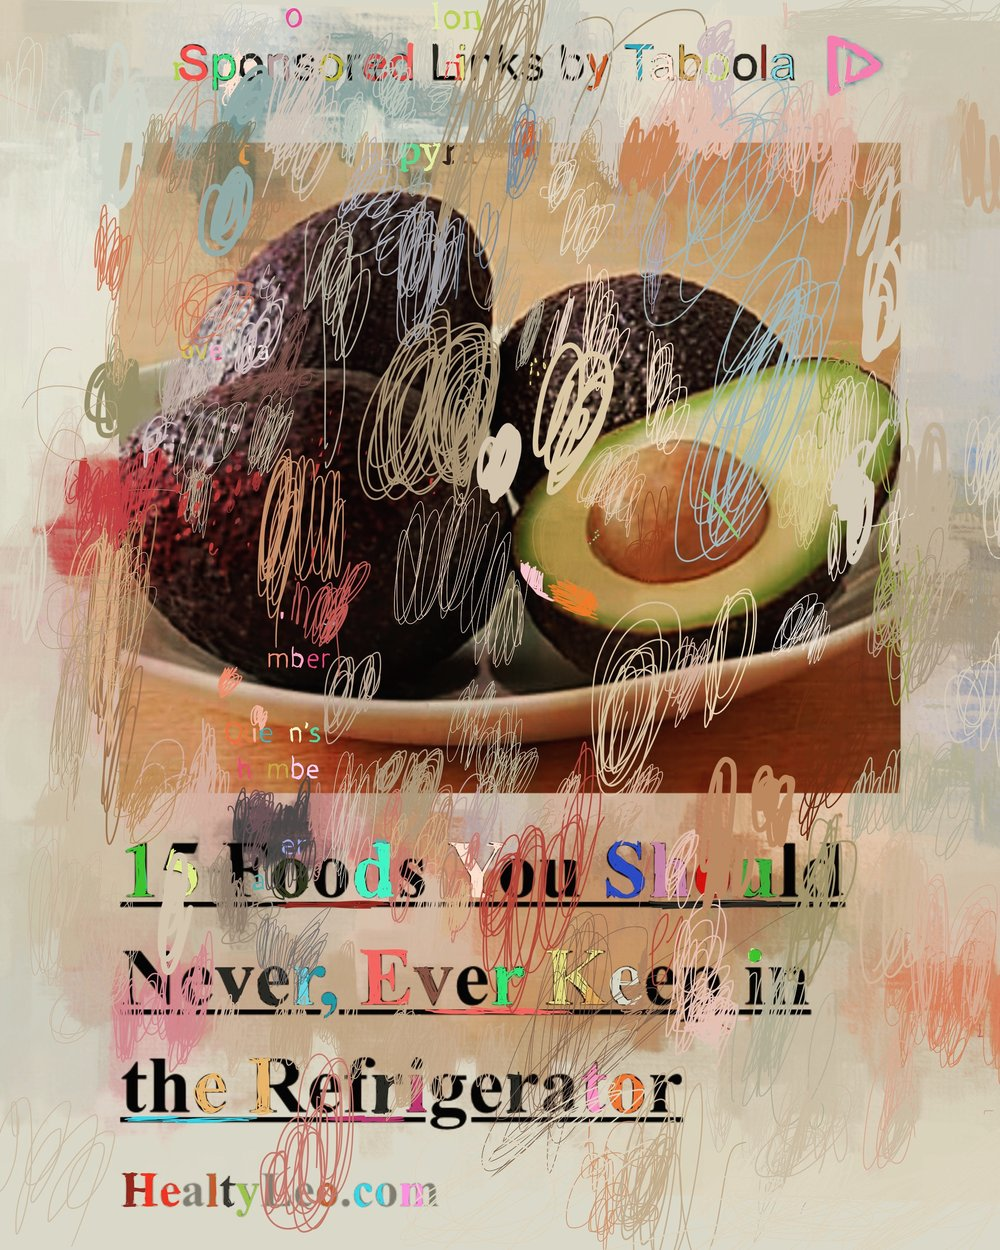 """15 Foods You Should Never, Ever Keep in the Regrigerator"", iPhone 6S, digital image, 2017."